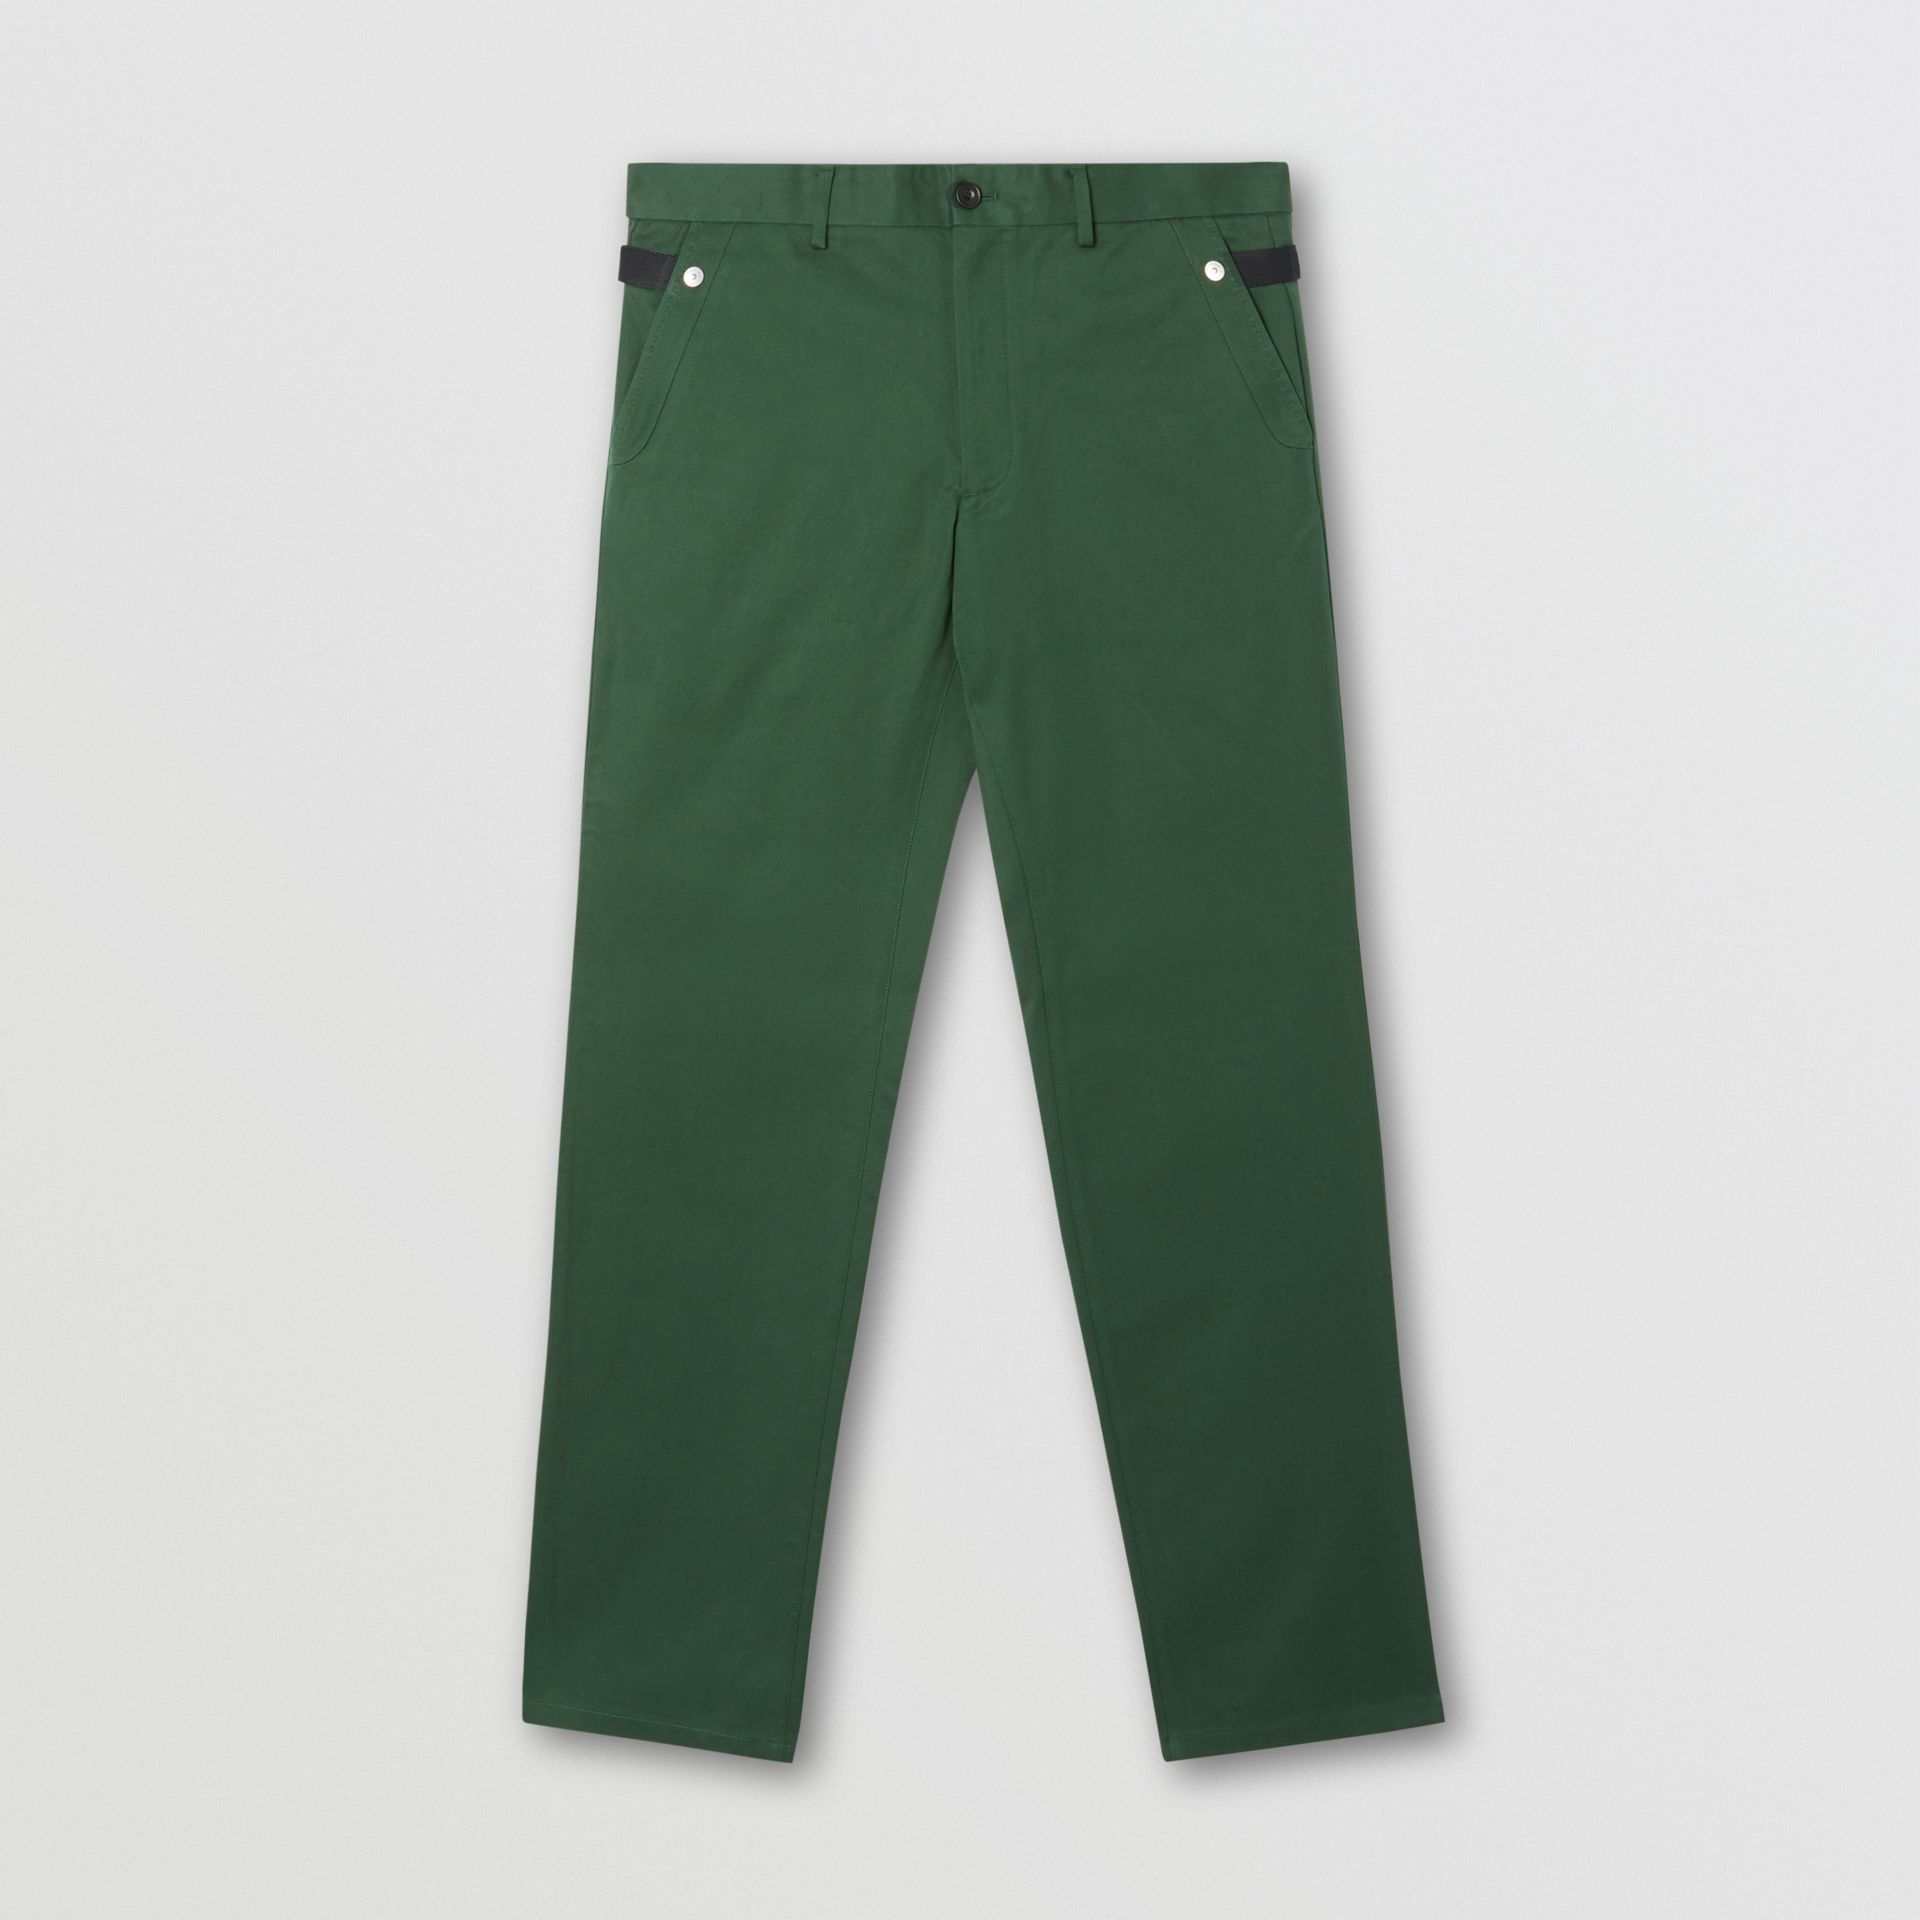 Classic Fit Cotton Chinos in Dark Pine Green - Men | Burberry - gallery image 3